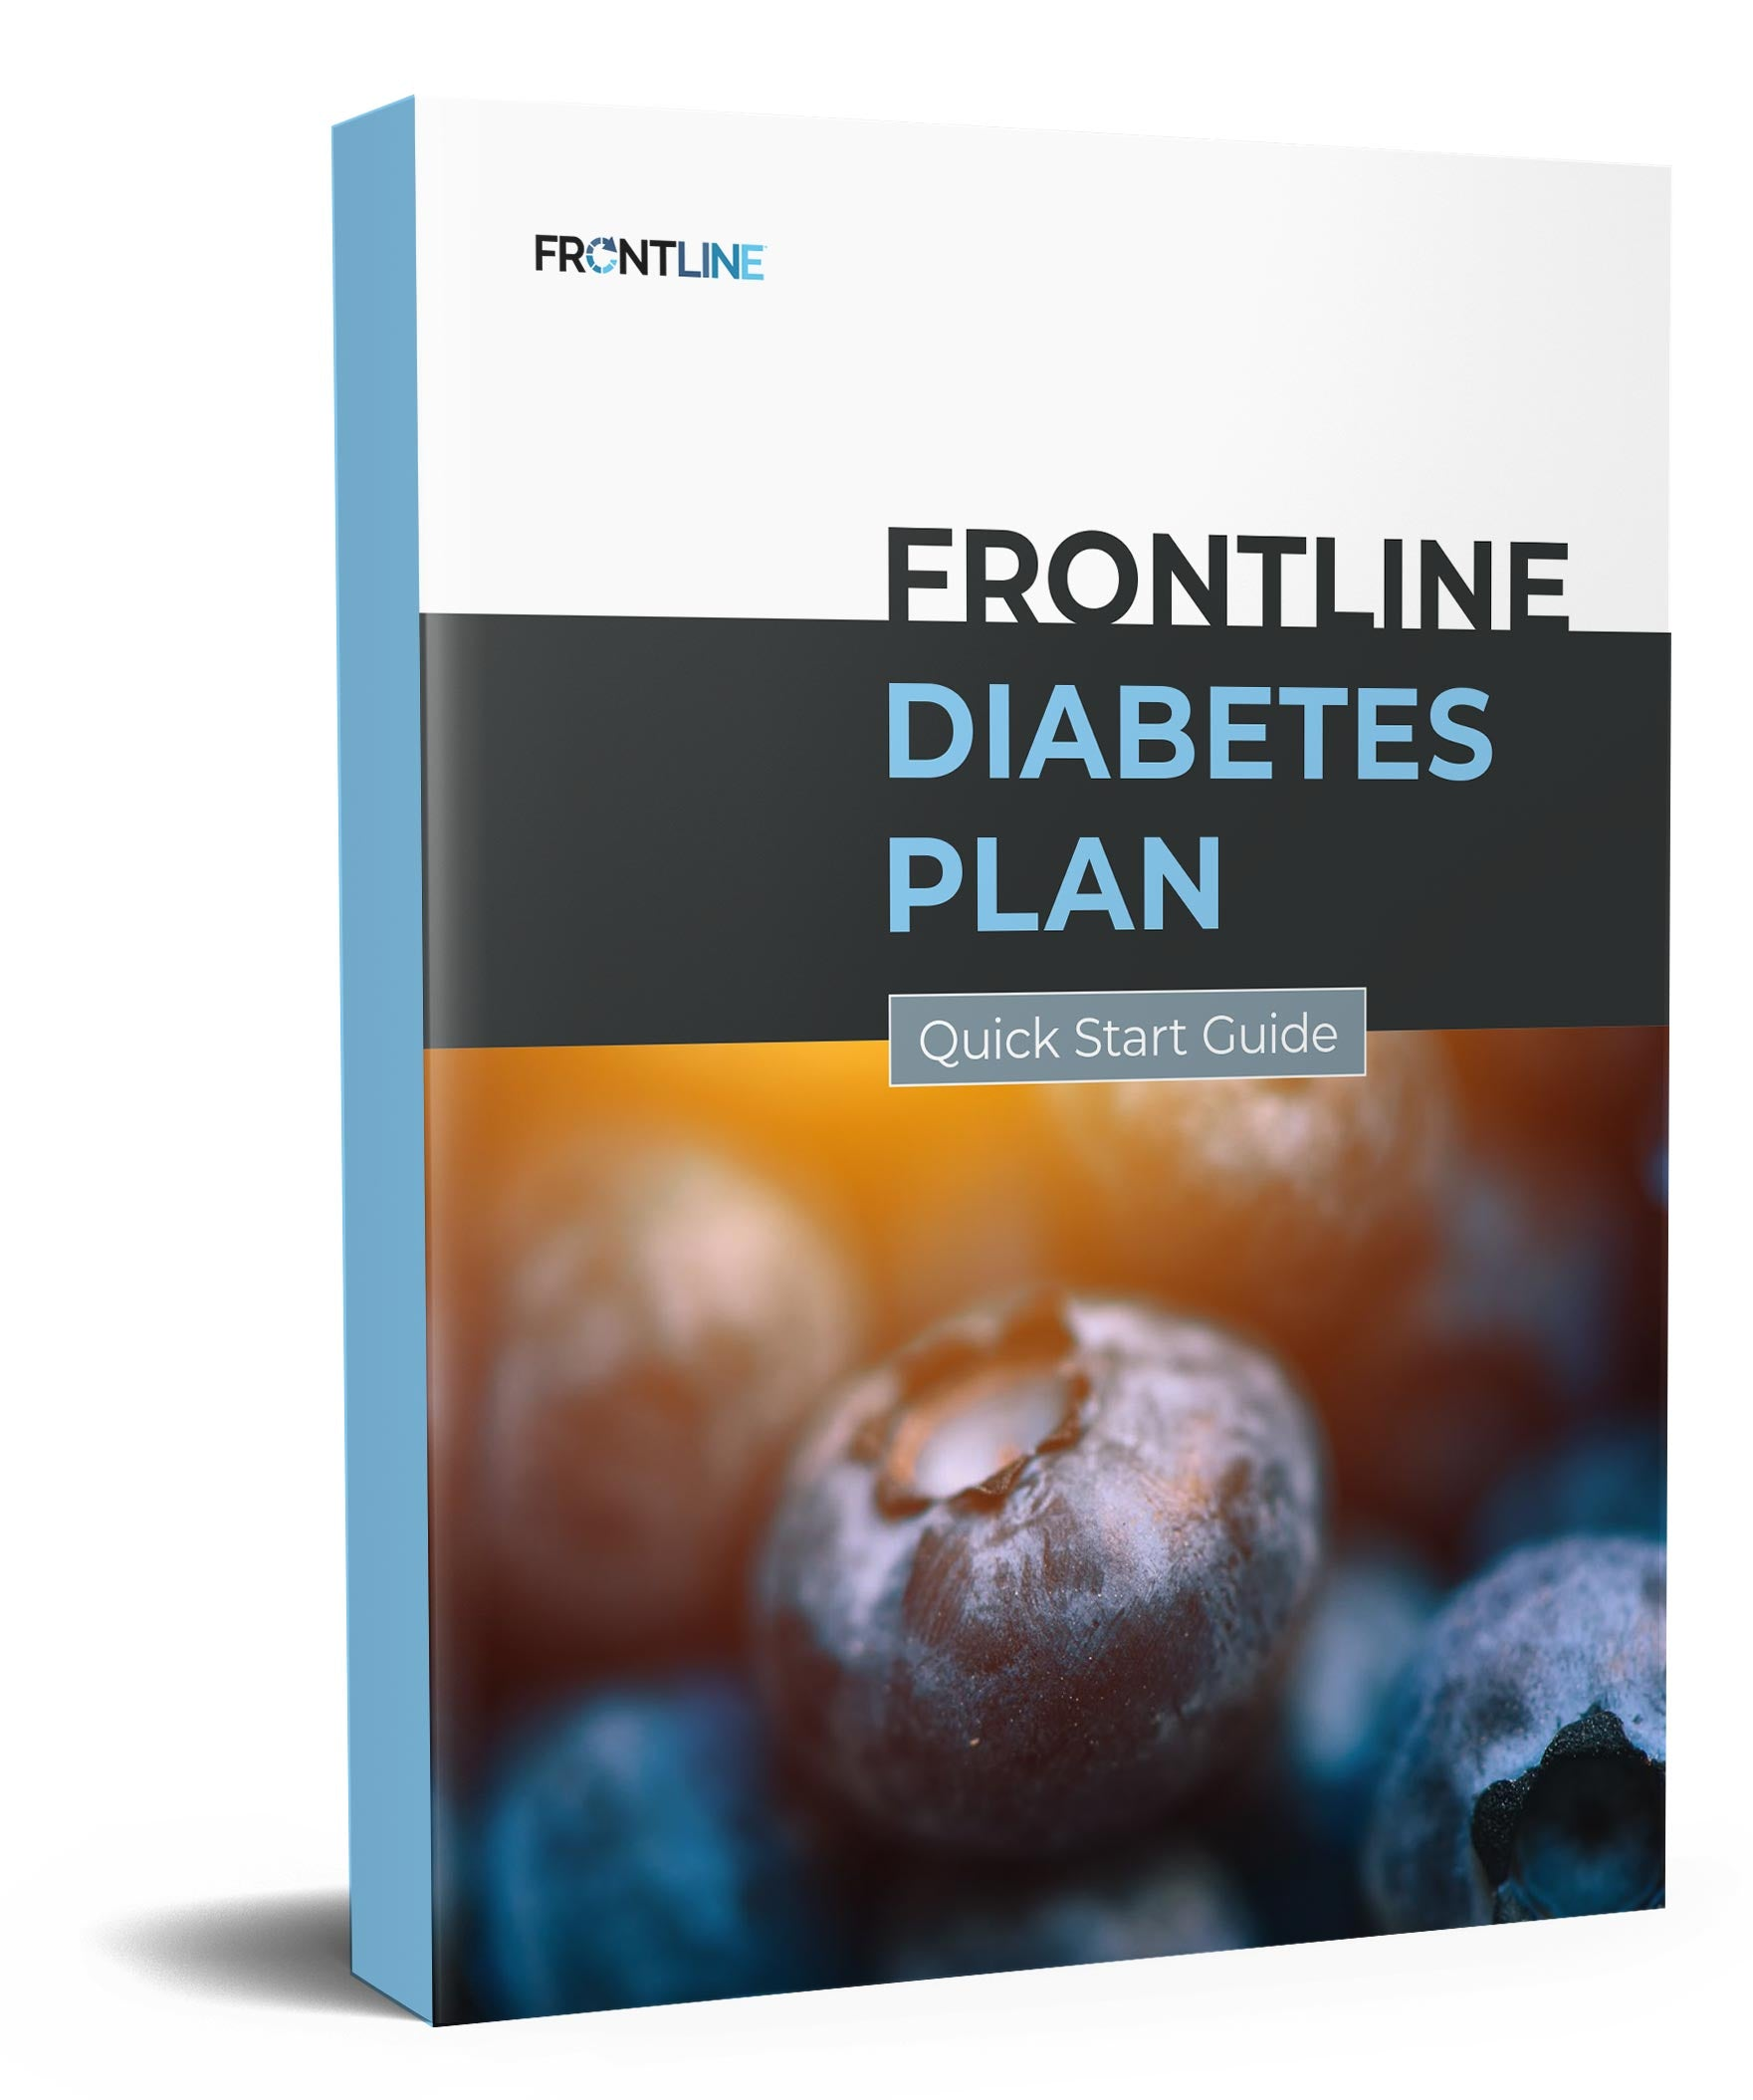 Frontline Diabetes Plan Quick Start Guide